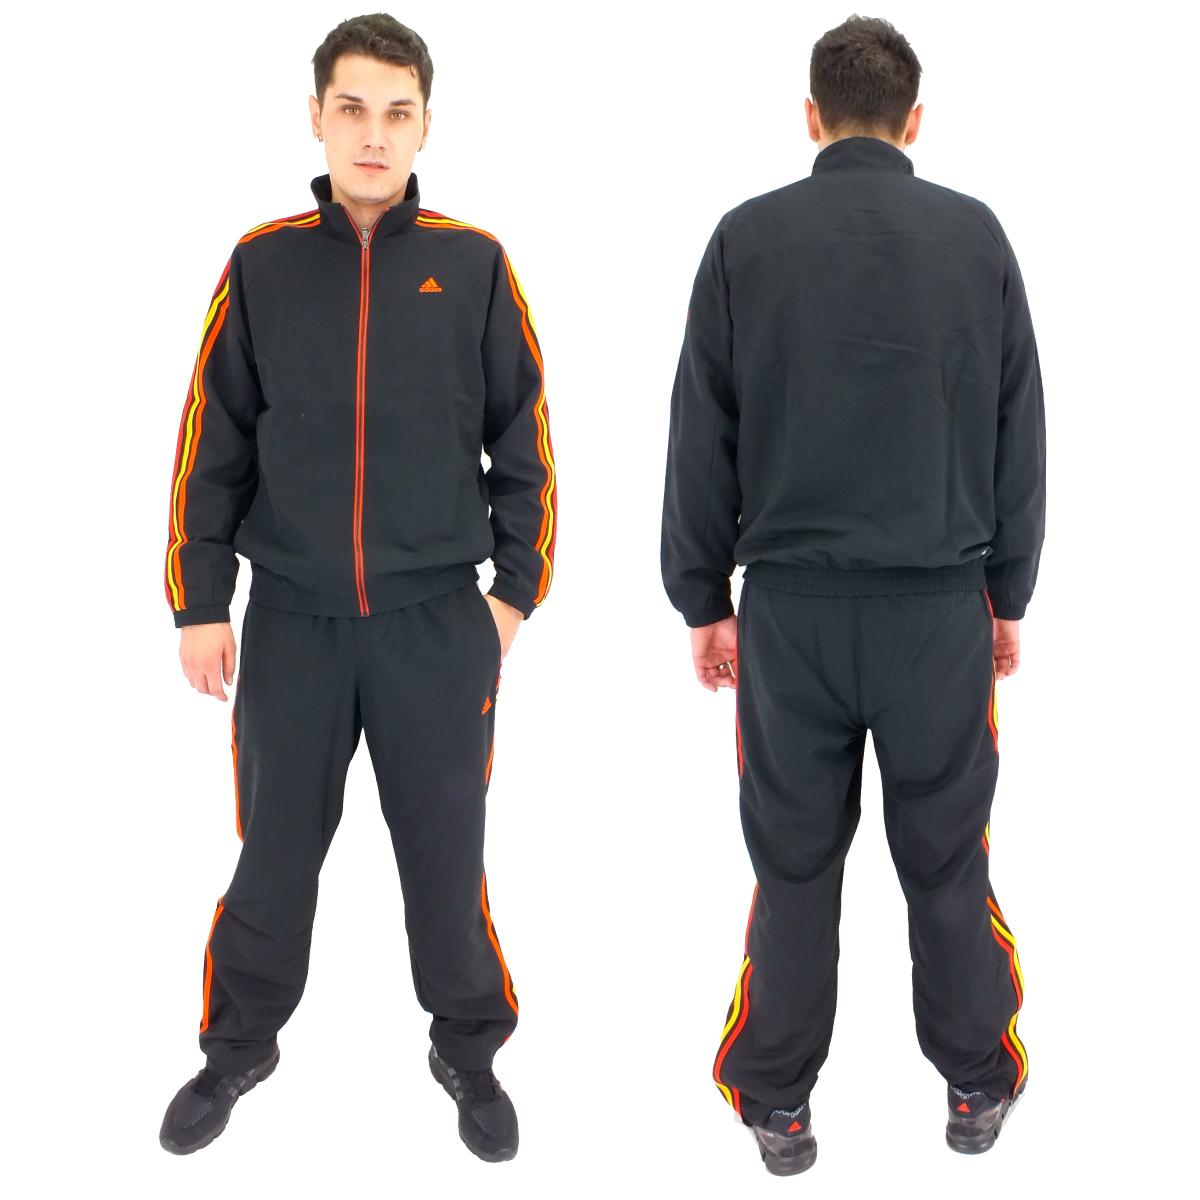 adidas ess 3s woven tracksuit m67792 jogginganzug. Black Bedroom Furniture Sets. Home Design Ideas